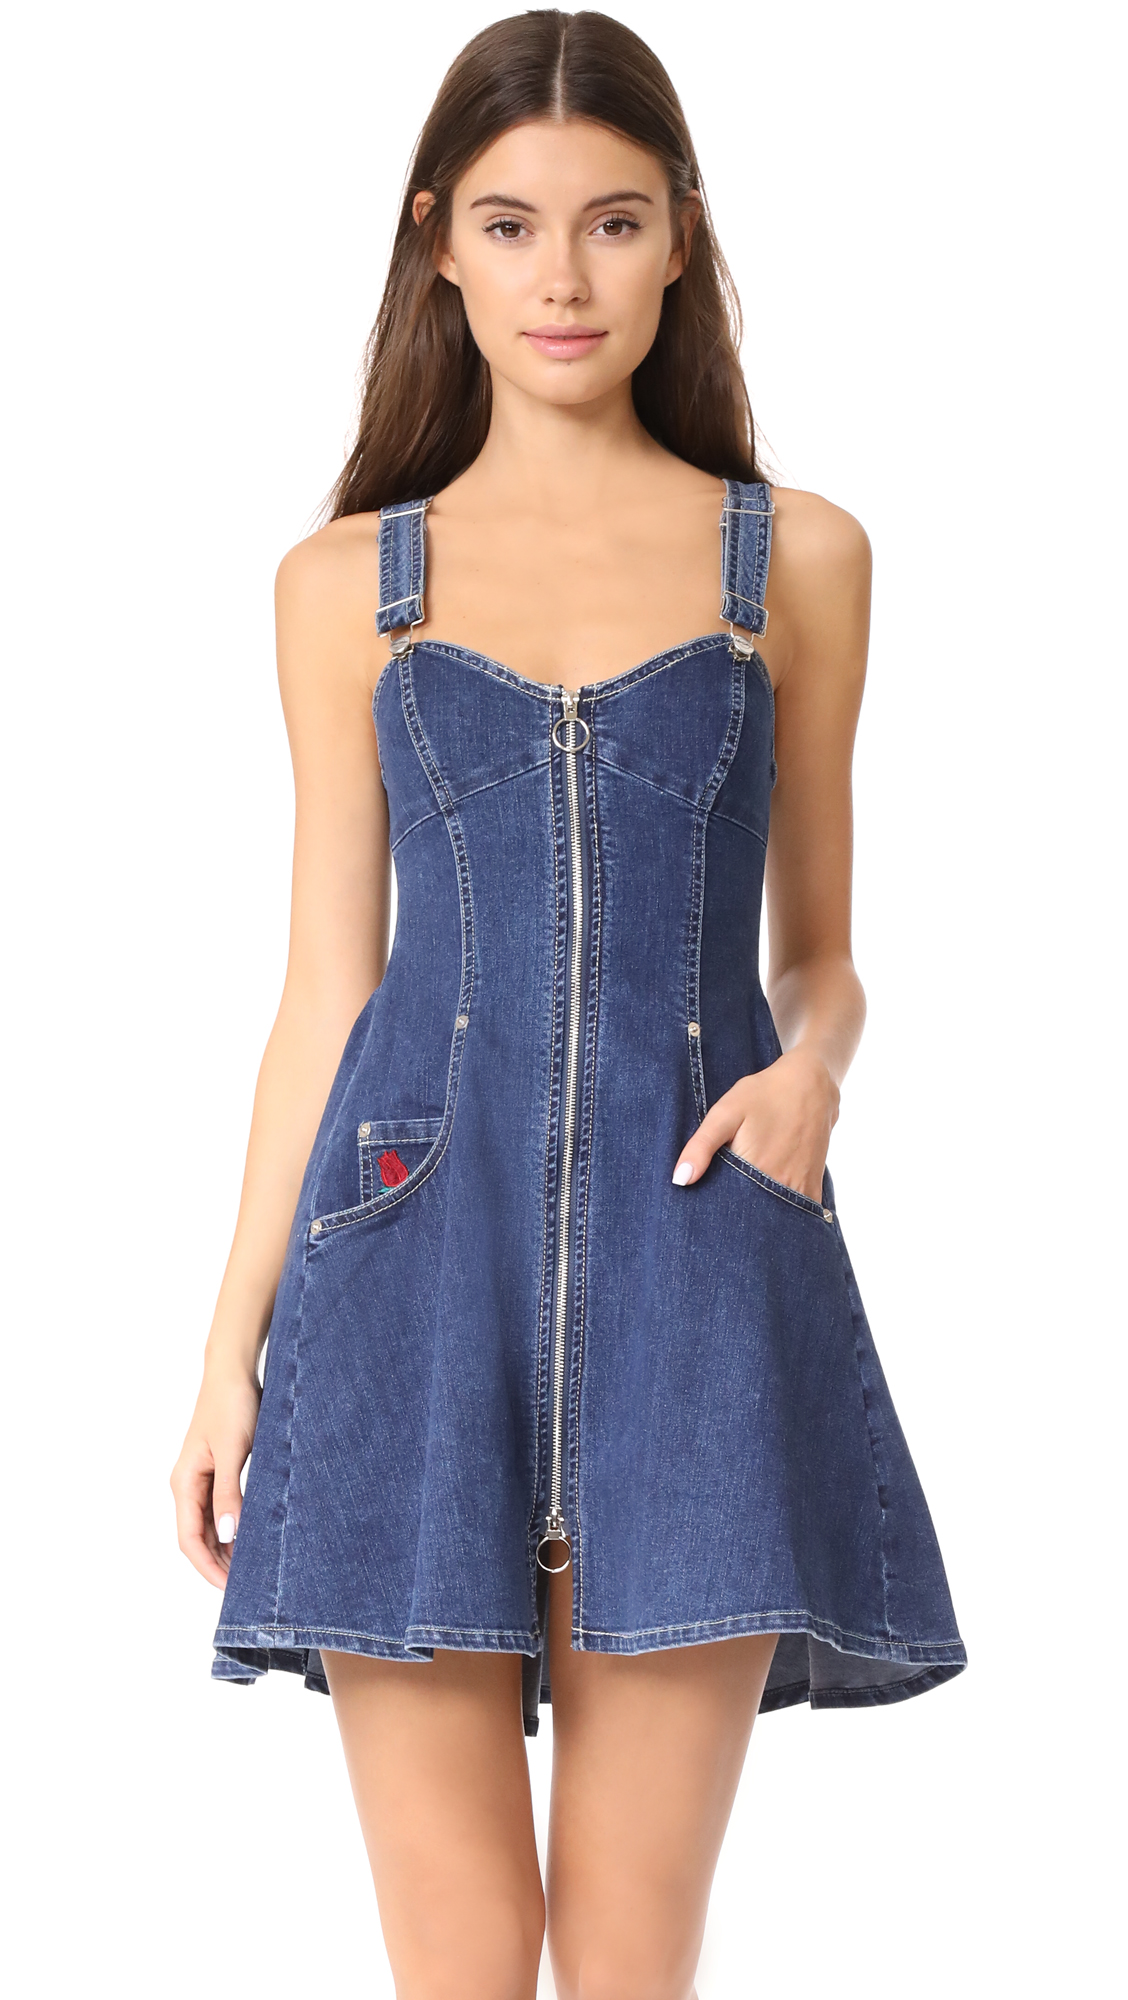 Adam Selman Overall Dress - Denim